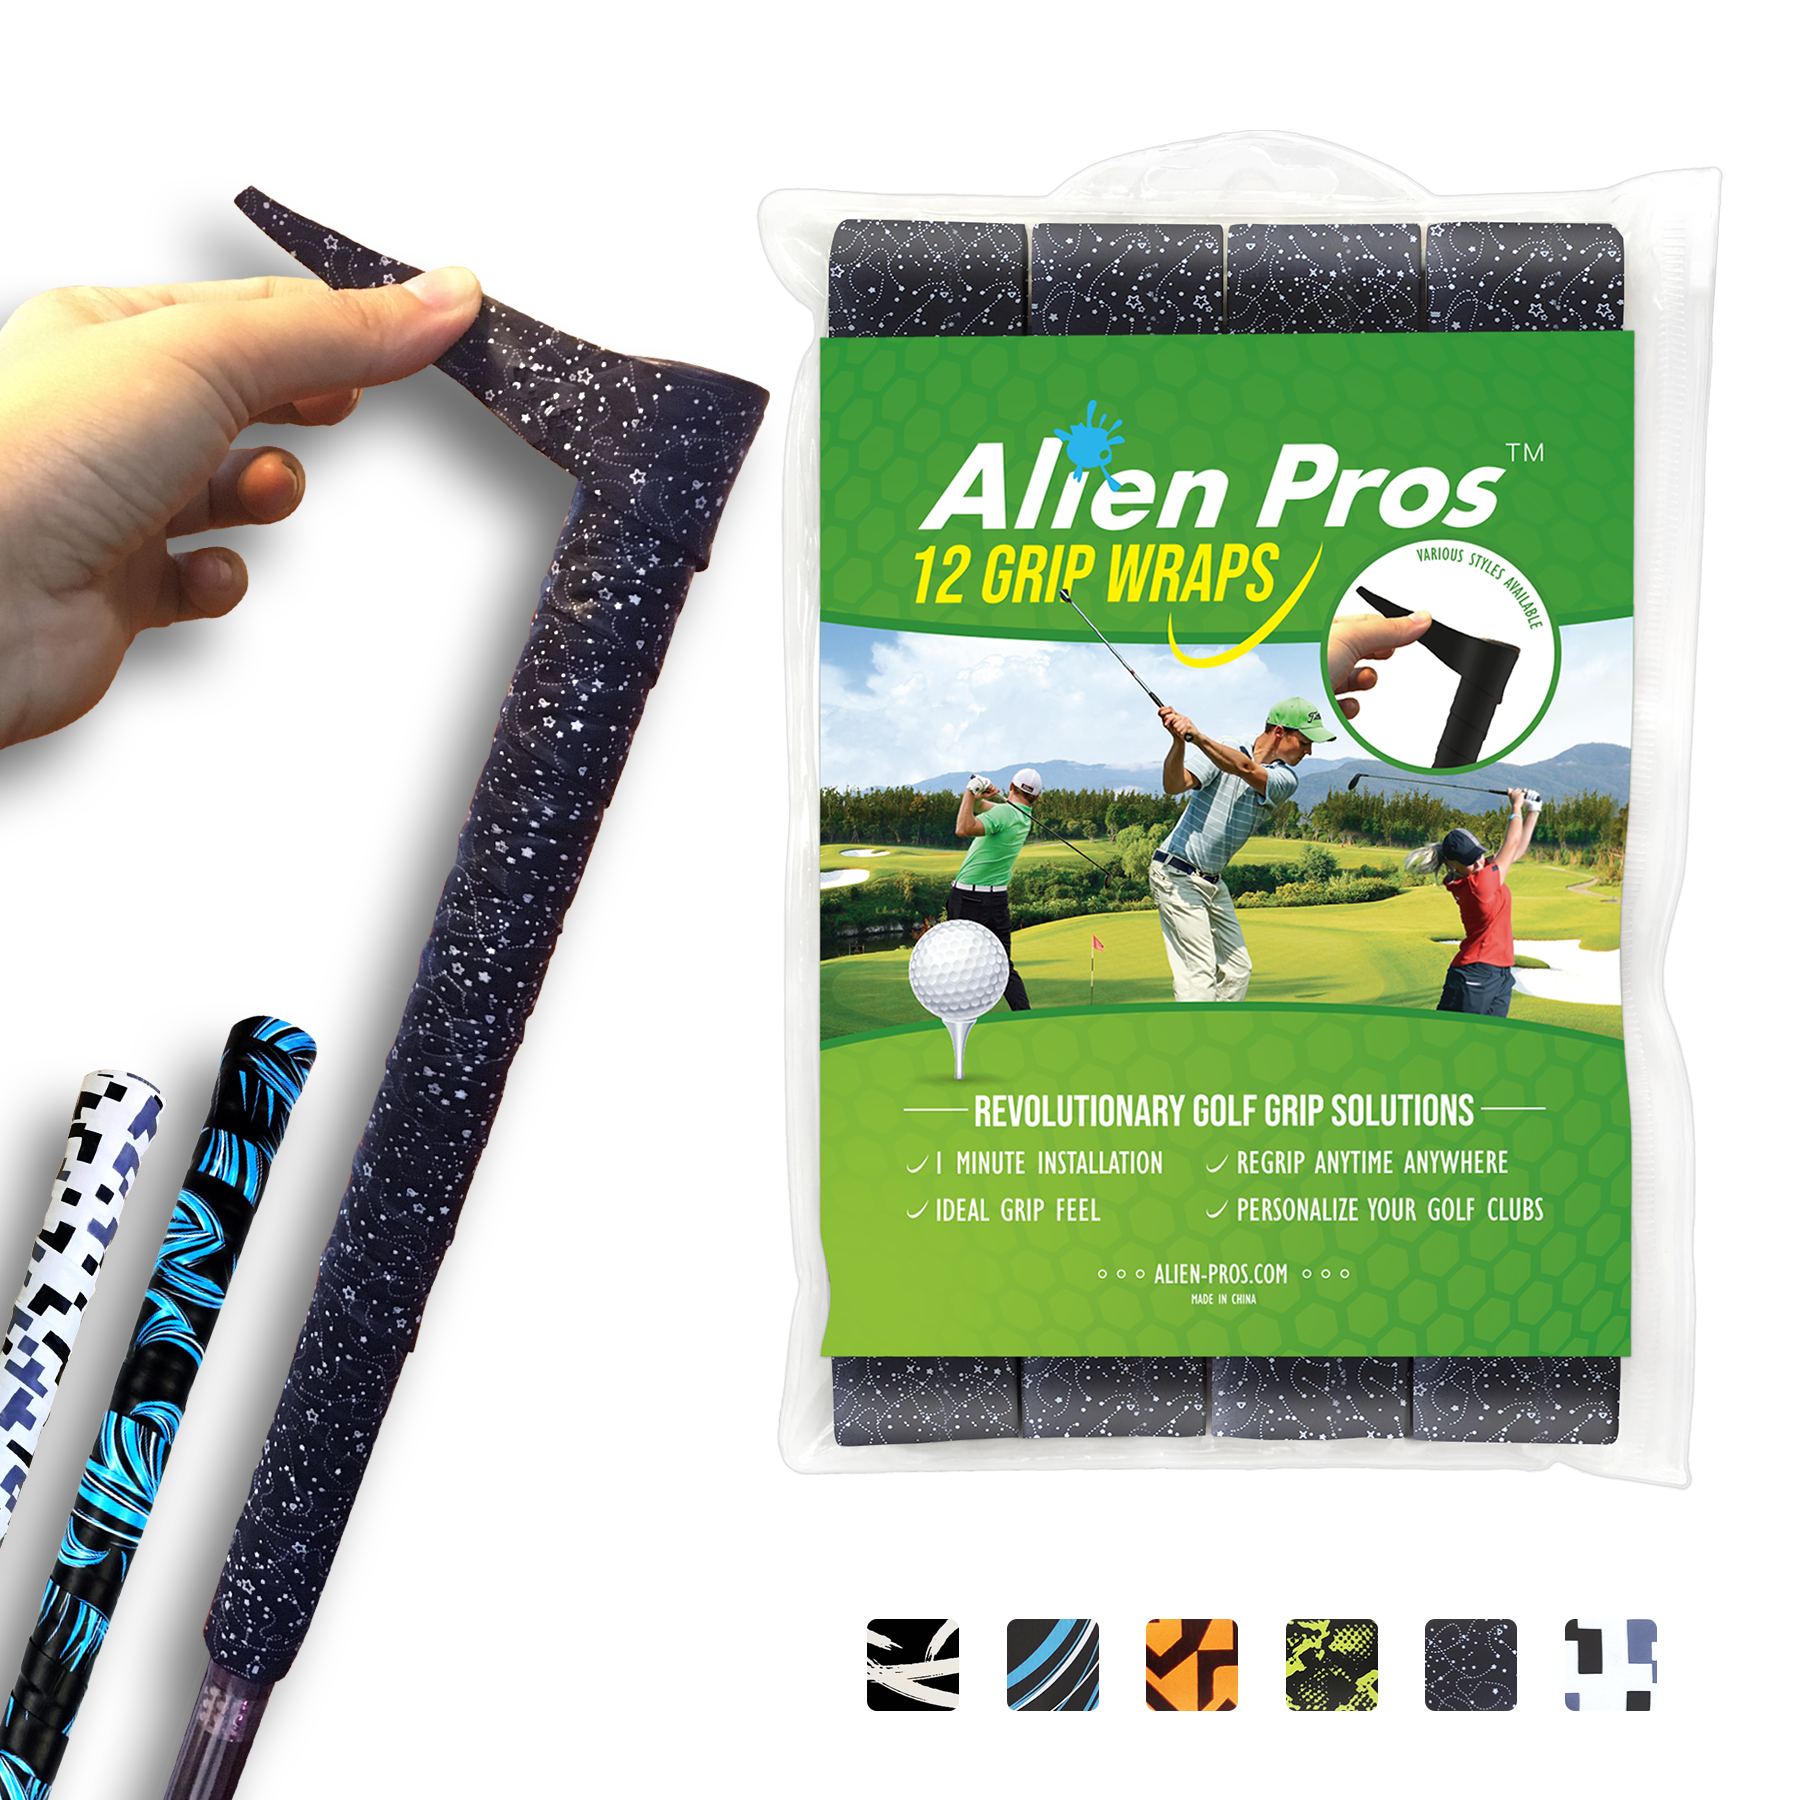 [US] Alien Pros Golf Grip Wrapping Tapes G-Tac (12-Pack)